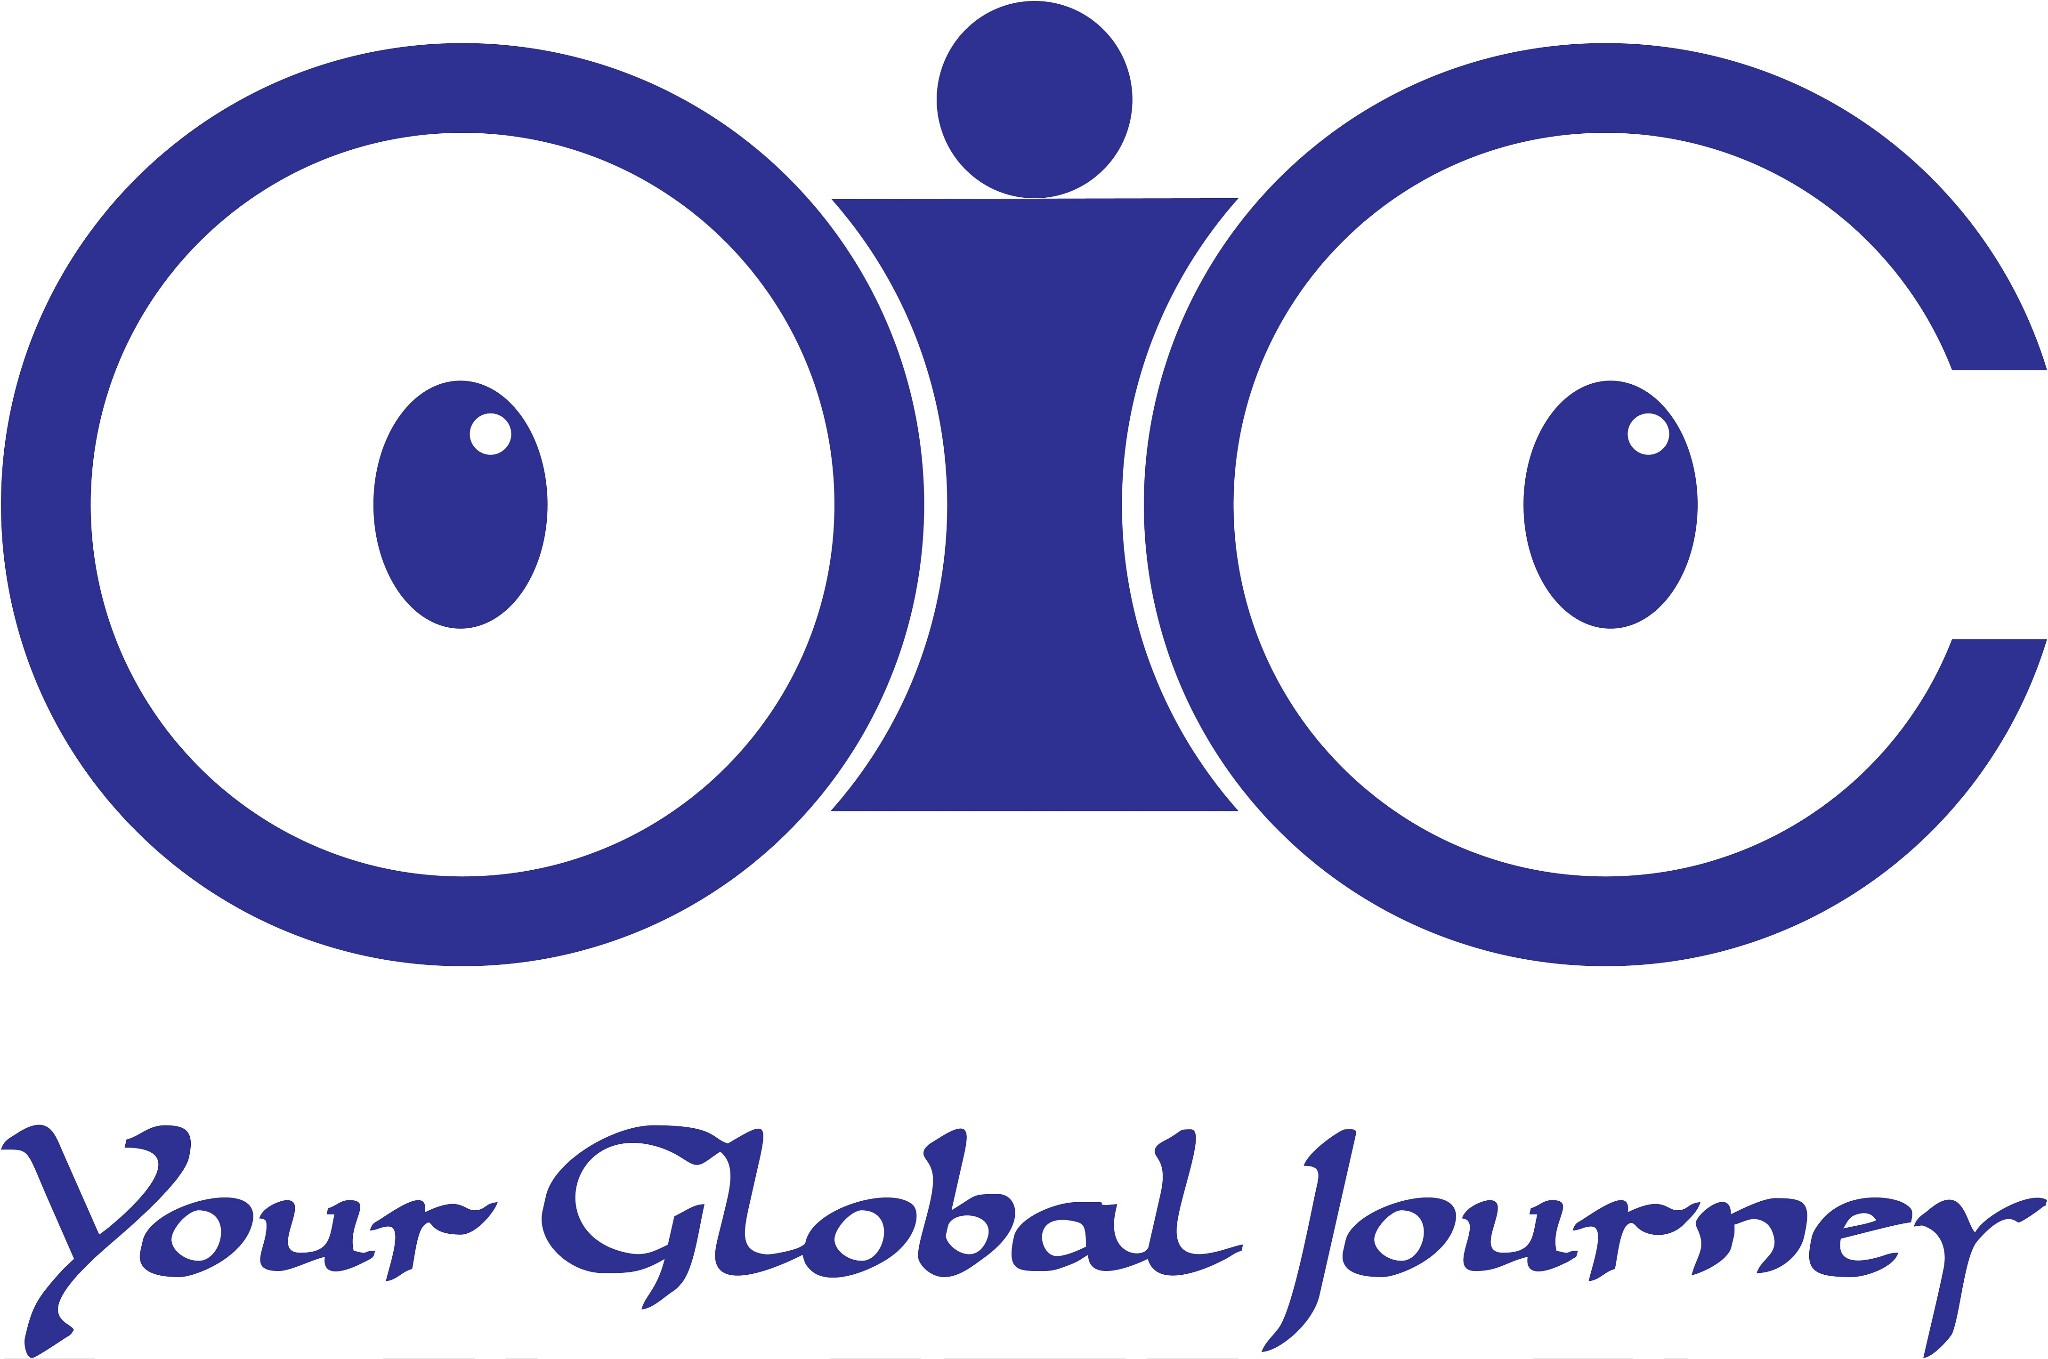 OiCglobaljourney